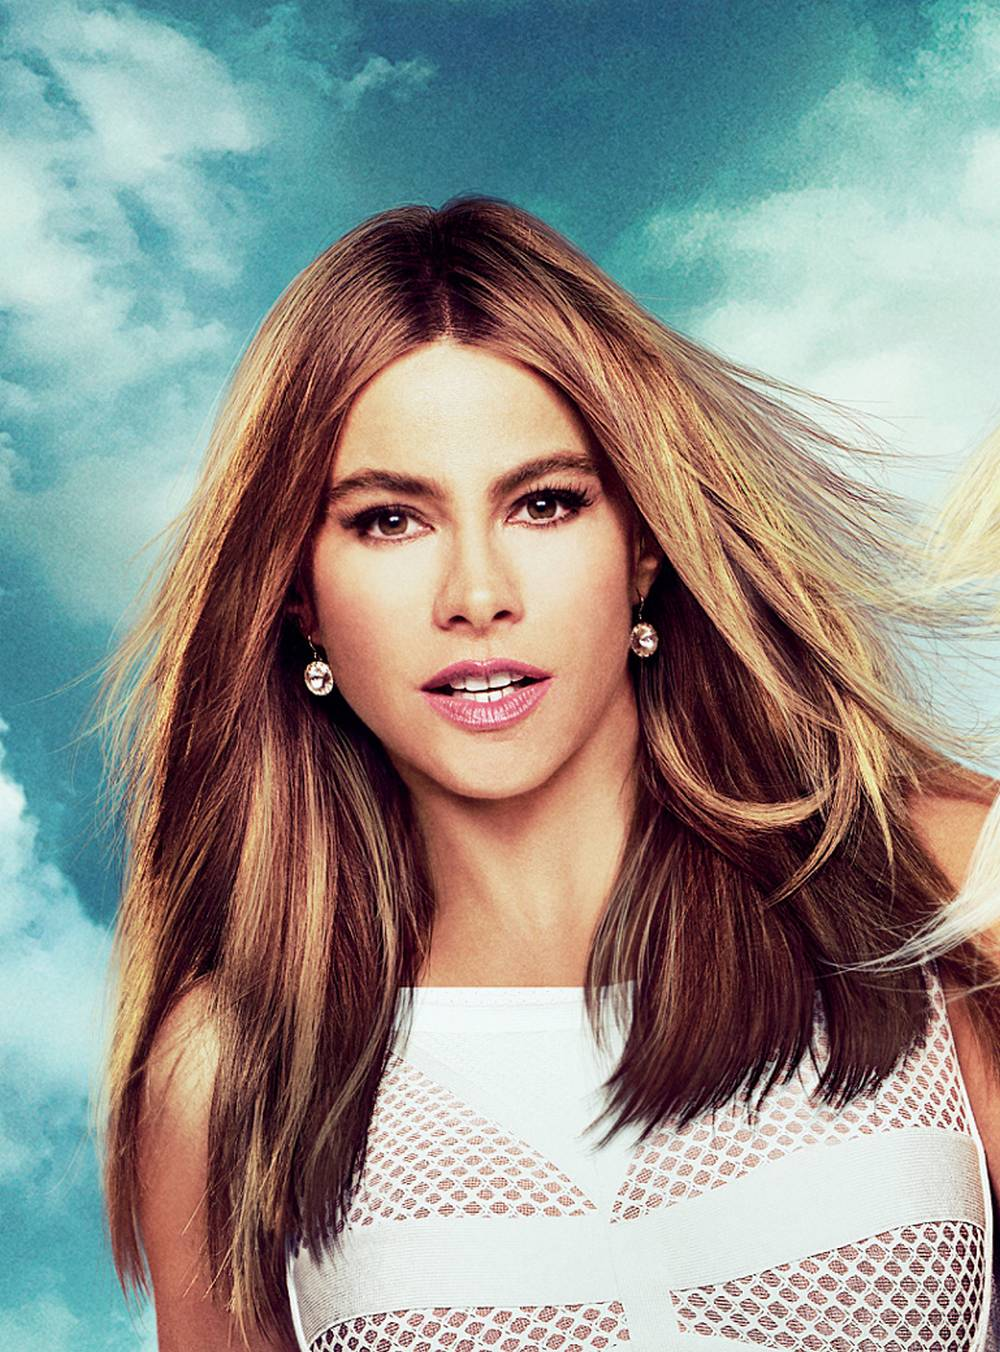 Sofia vergara is 10 10 pictures to pin on pinterest